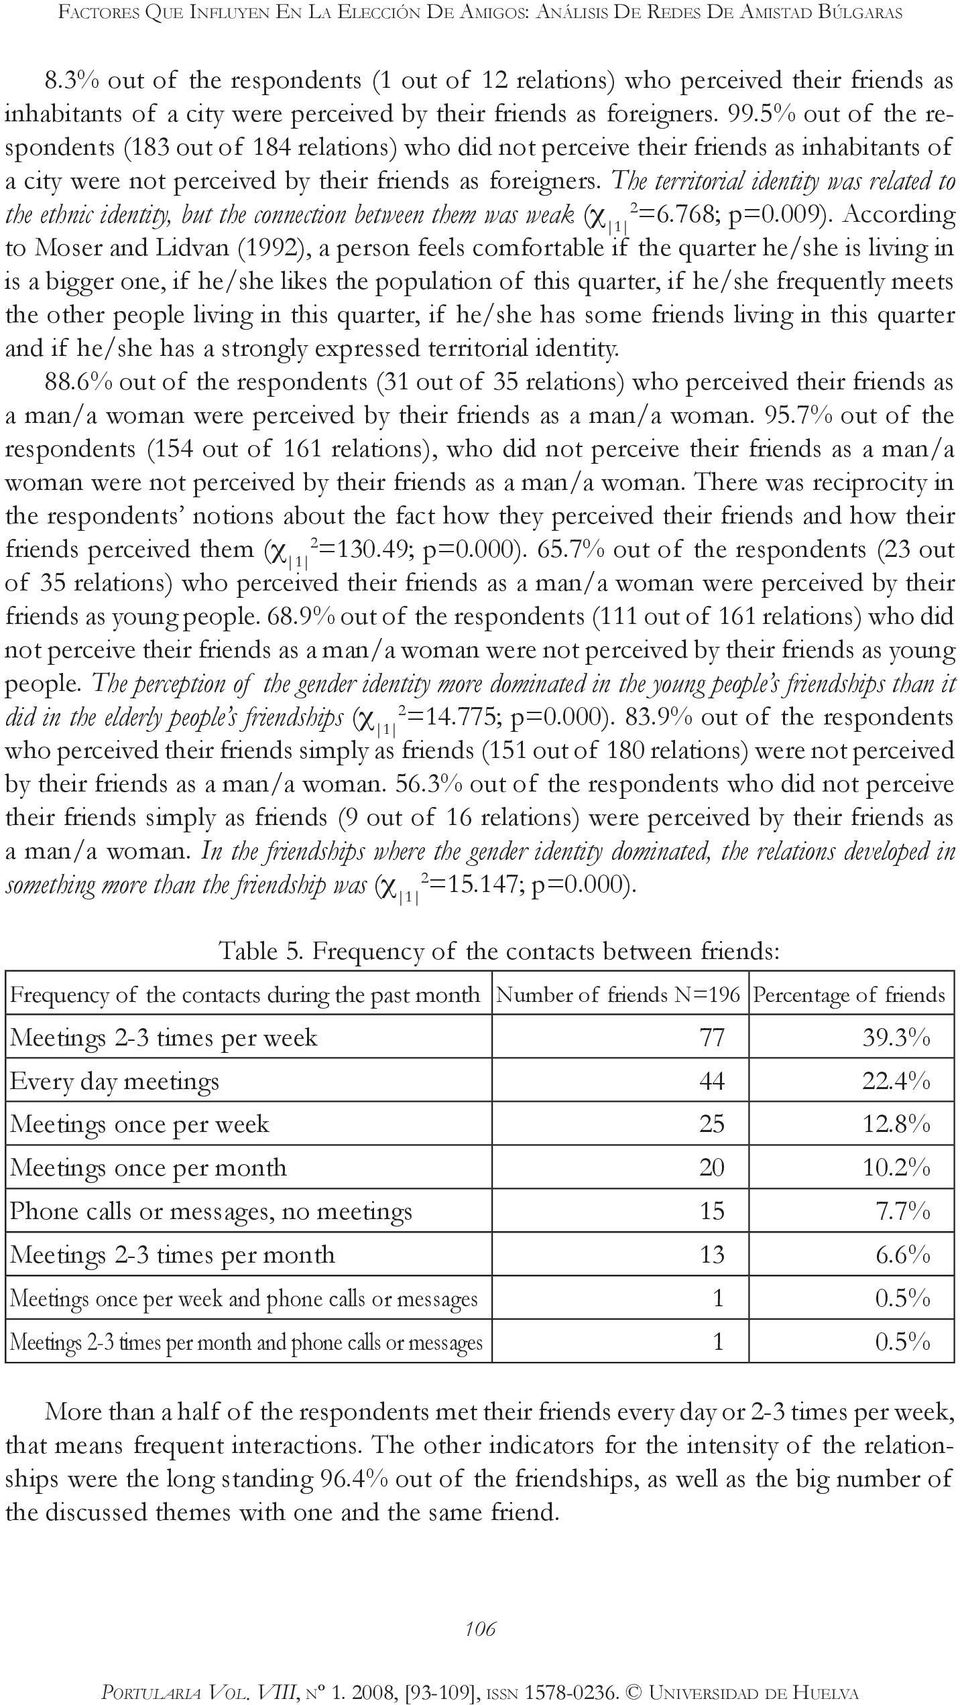 5% out of the respondents (183 out of 184 relations) who did not perceive their friends as inhabitants of a city were not perceived by their friends as foreigners.